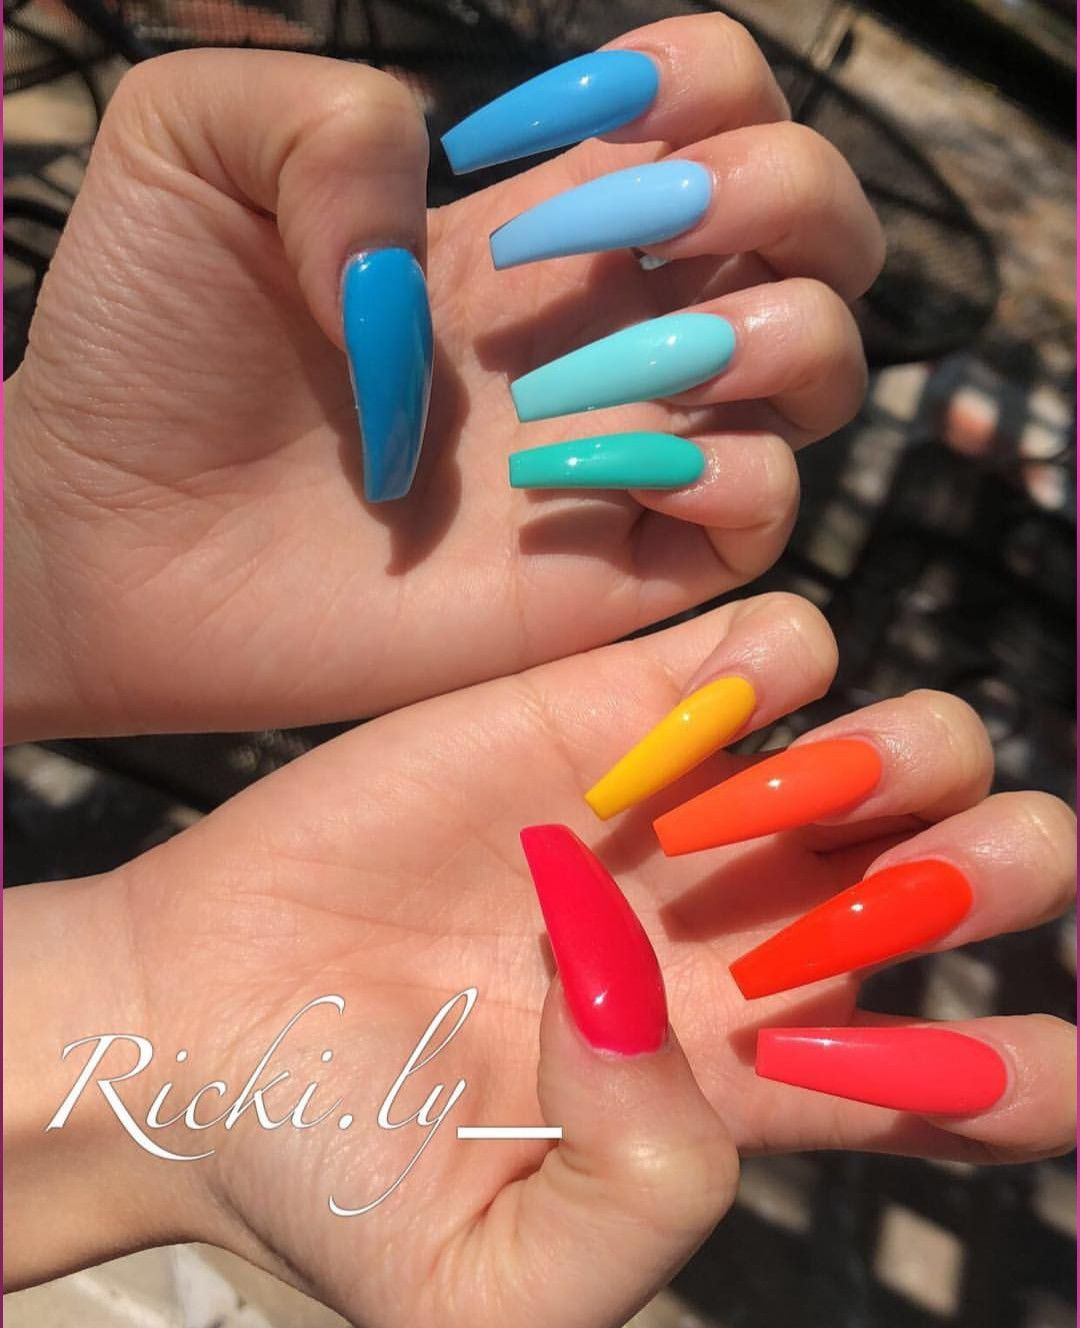 Need These Nails In The Summer Bb Rainbow Nails Bright Summer Nails Colorful Nail Designs